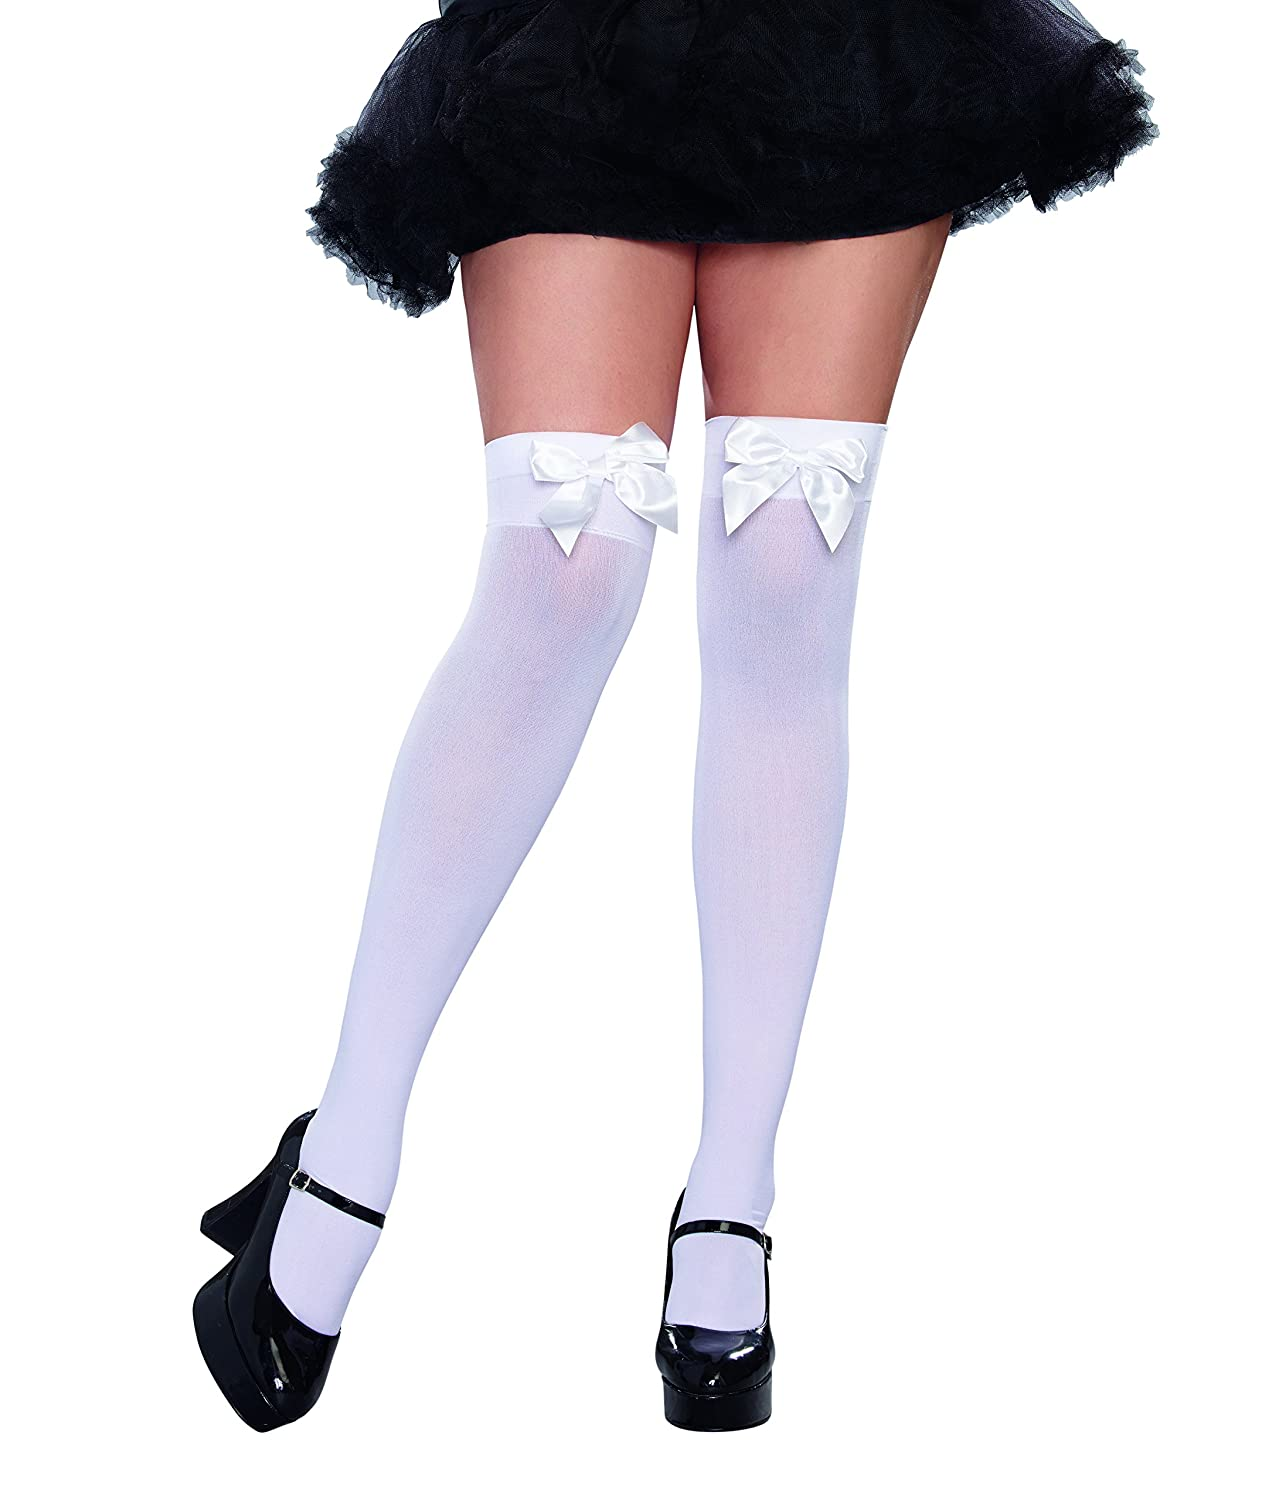 DreamGirl womens plus-size Plus Size Bow Top Stockings Black One Size Plus Dreamgirl International 10342X